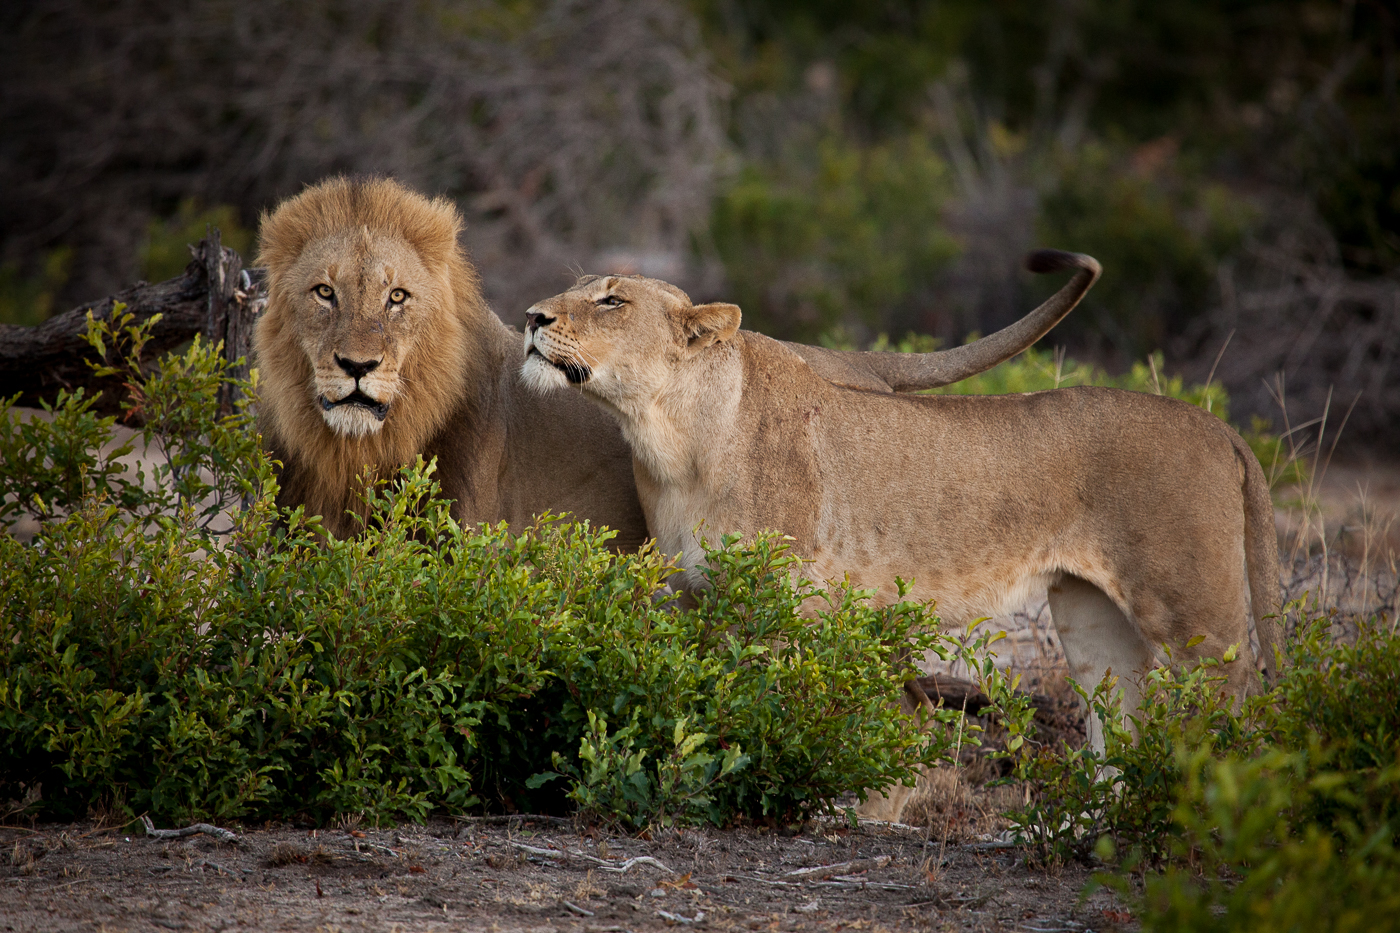 Mhangeni lioness and matimba male